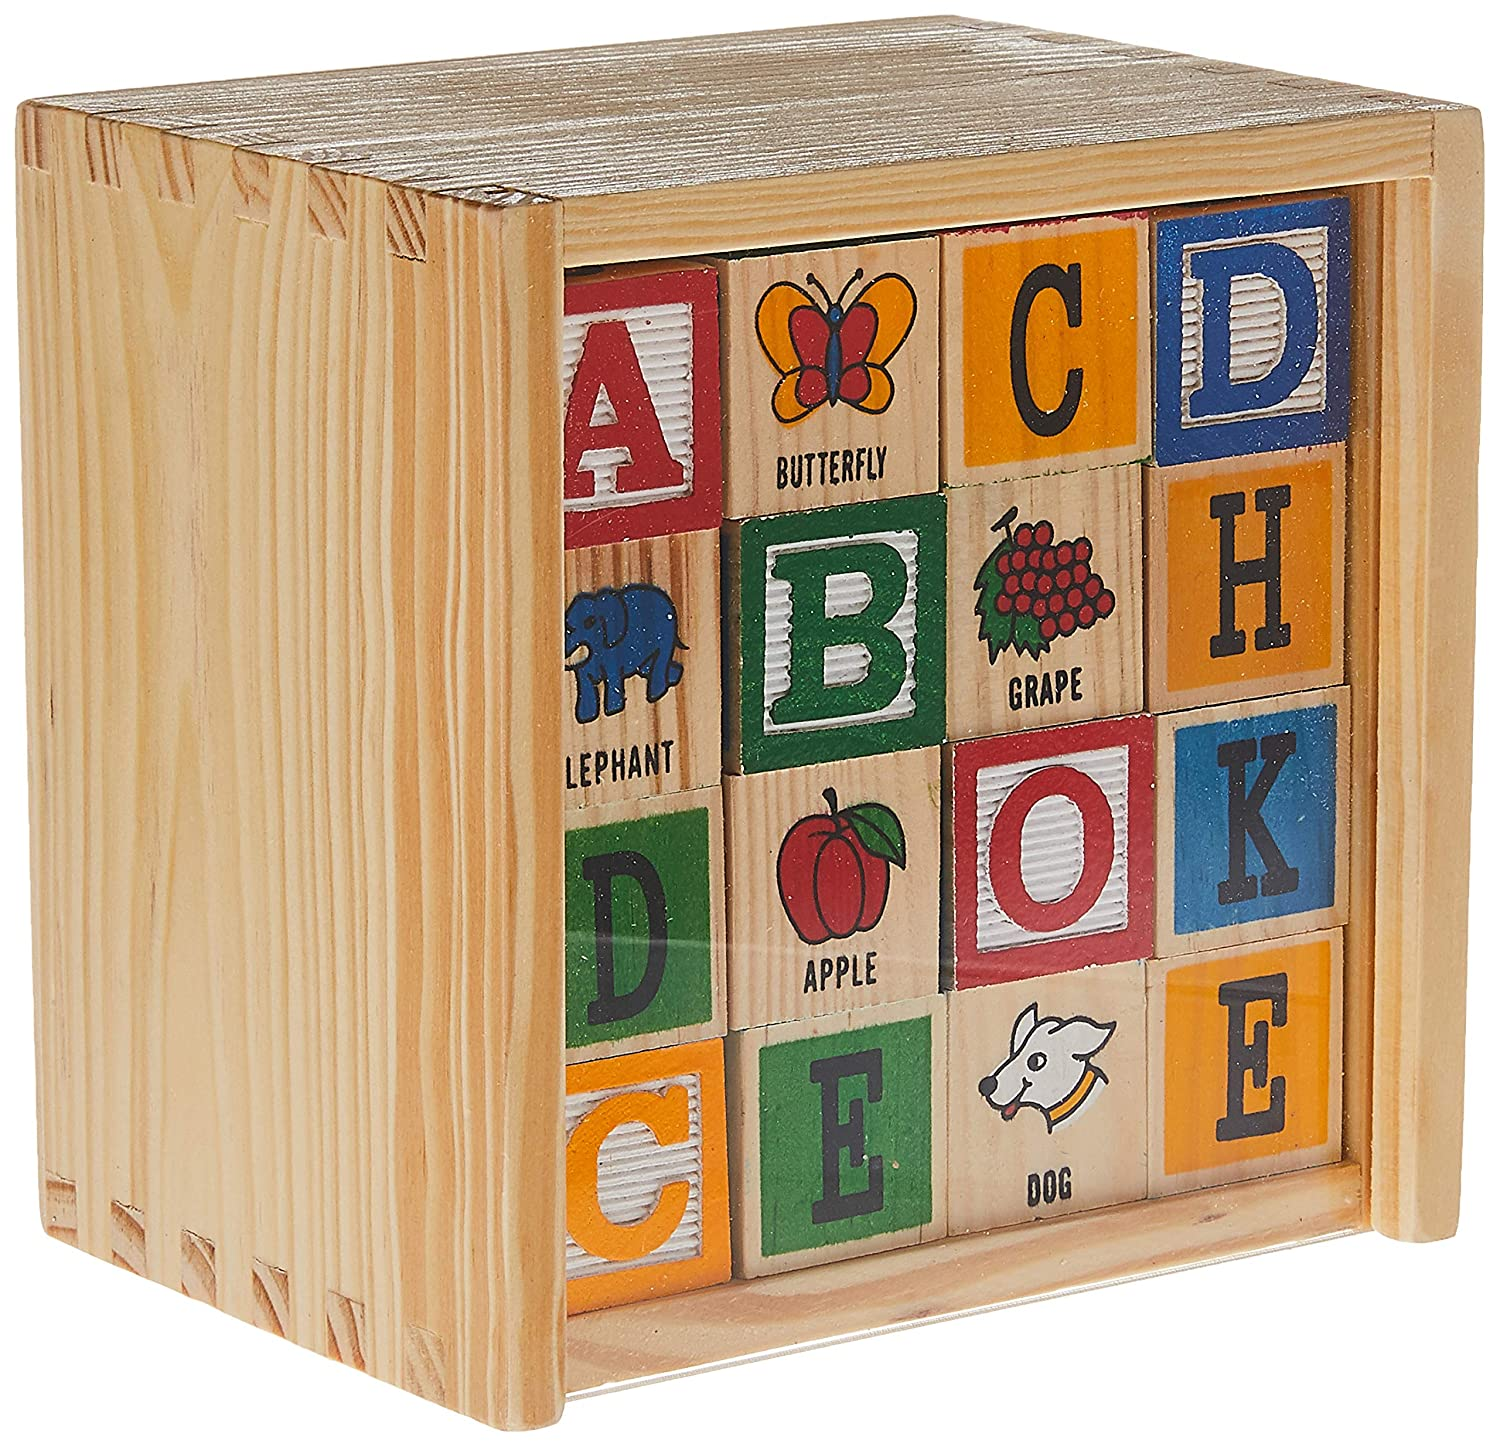 B00000DMC6 Schylling ABC Wooden Alphabet Blocks Toy 9155h6R4f3L